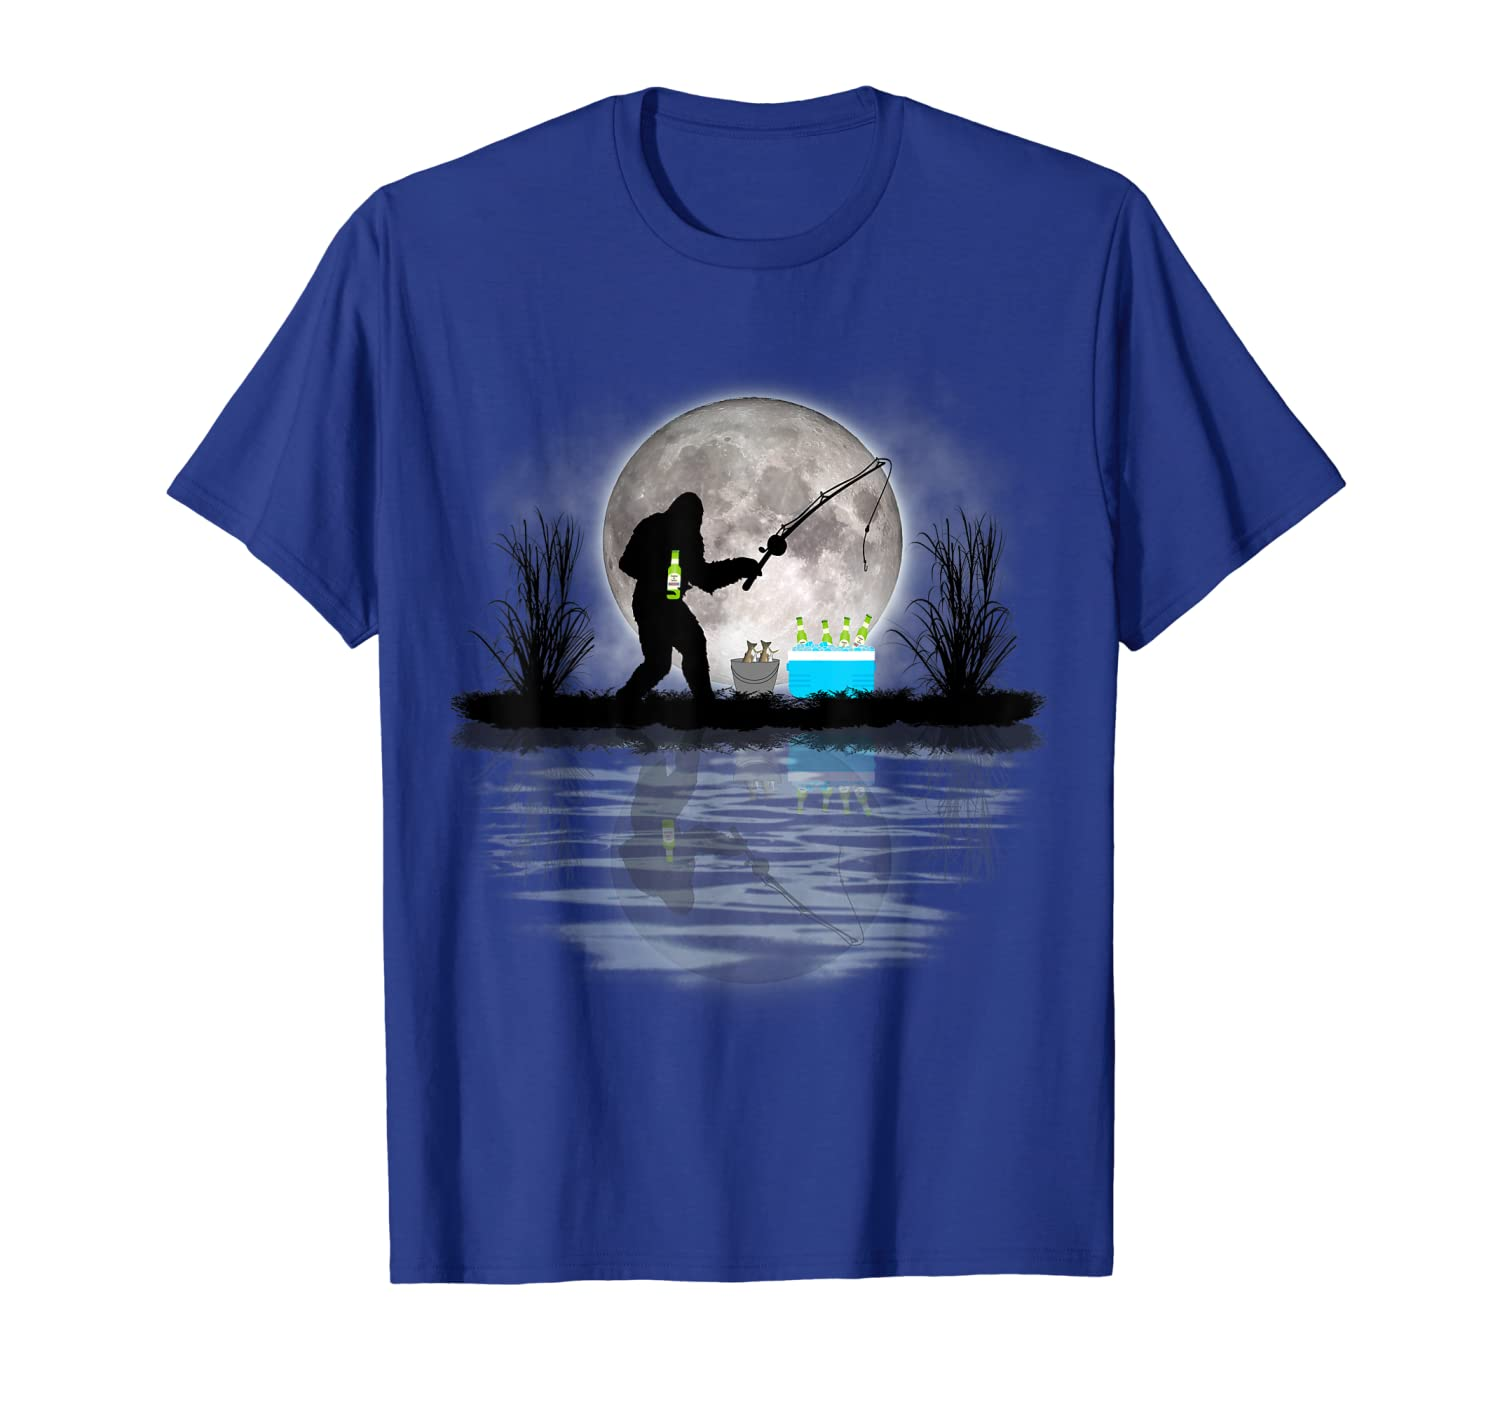 Bigfoot Fishing Tee Funny Sasquatch Fishing & Beer Gift T-Shirt Unisex Tshirt